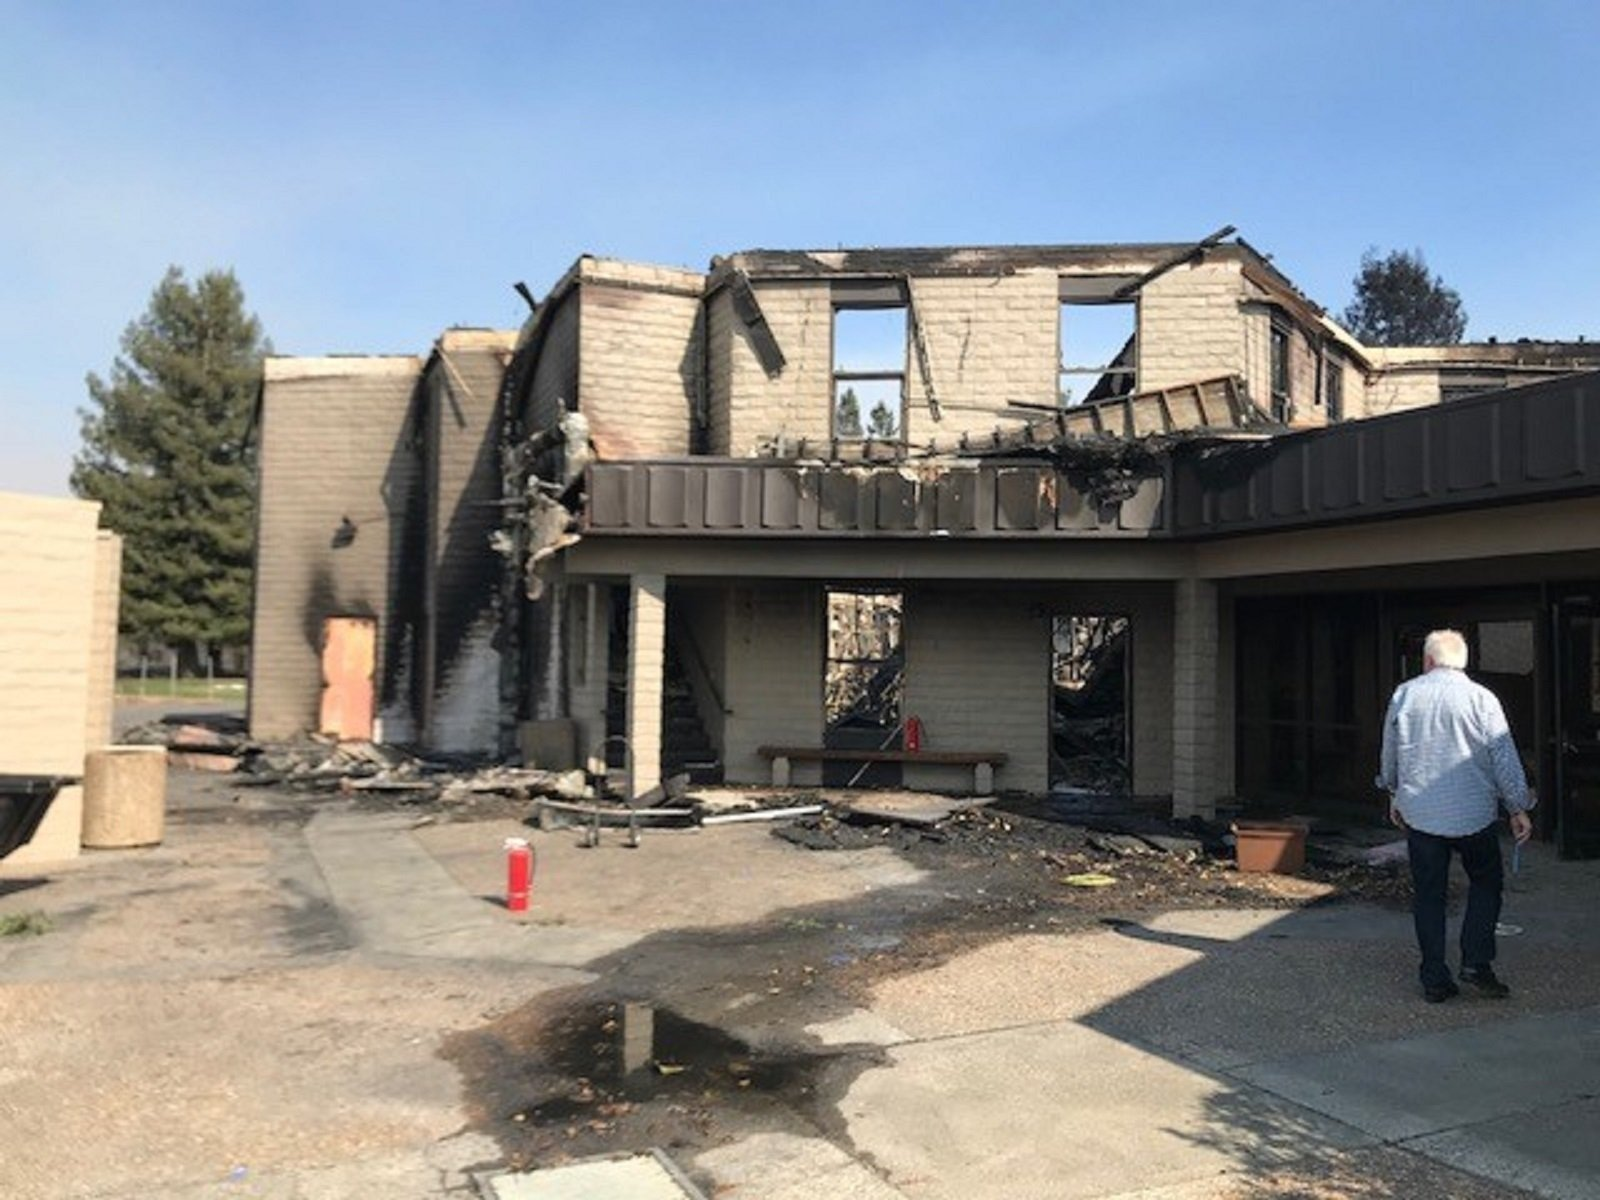 Sonoma County's Anova Center for Education after the North Bay wildfire. (CNN photo)